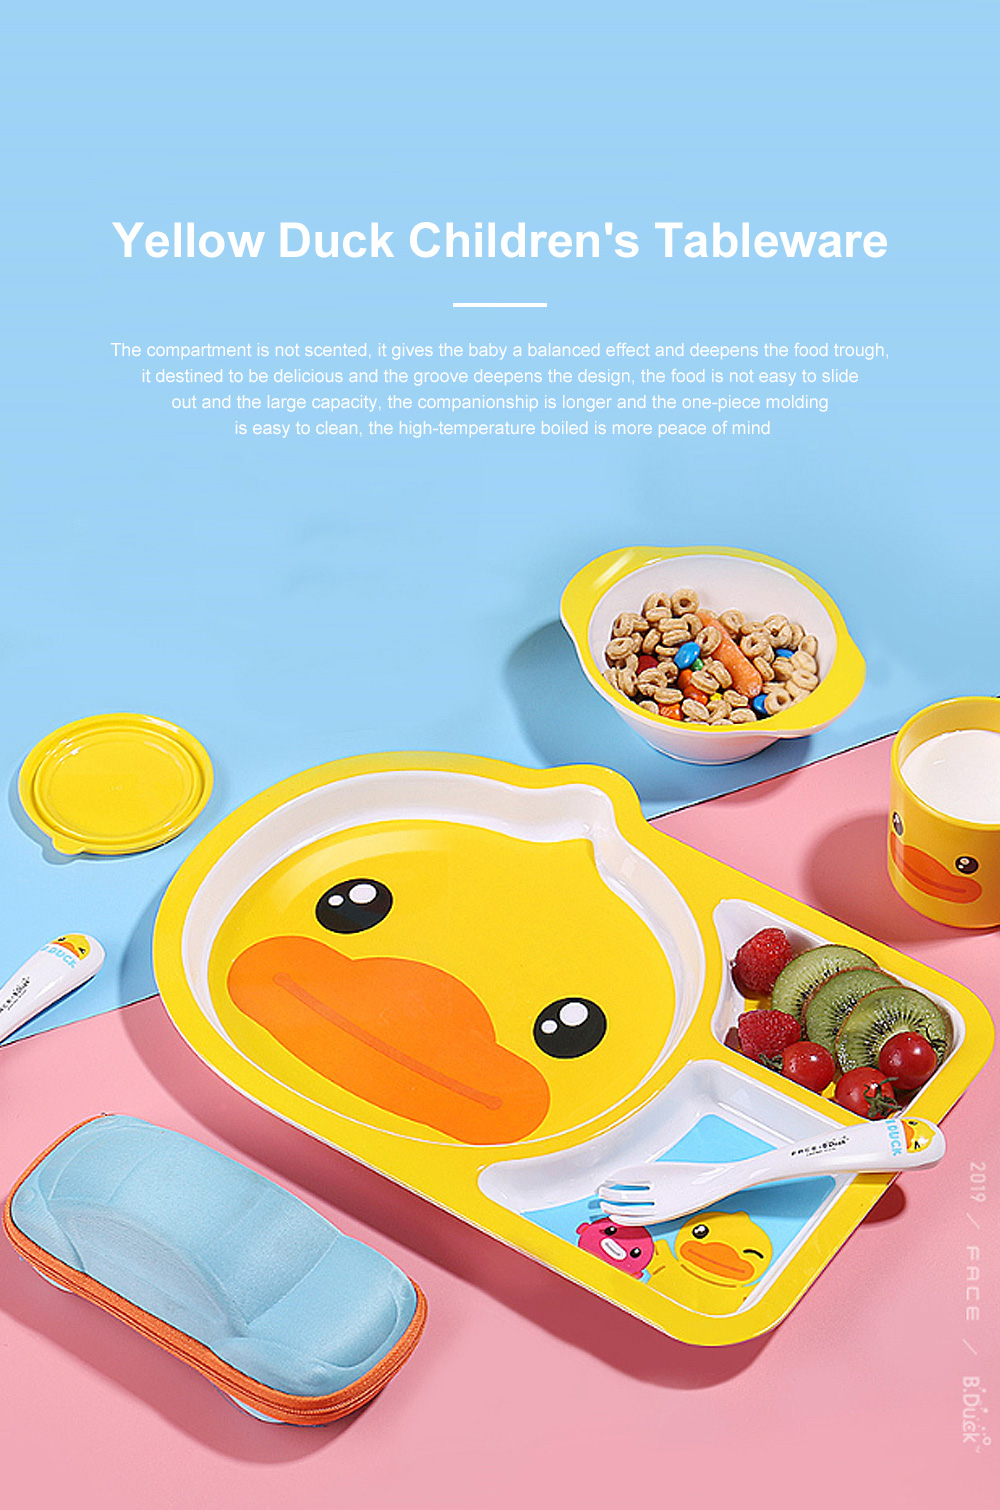 Small Yellow Duck Children's Tableware Baby Multi-function Cute Cartoon Plate Baby Shatter-resistant Food Supplement Bowl Fork Spoon Set 0